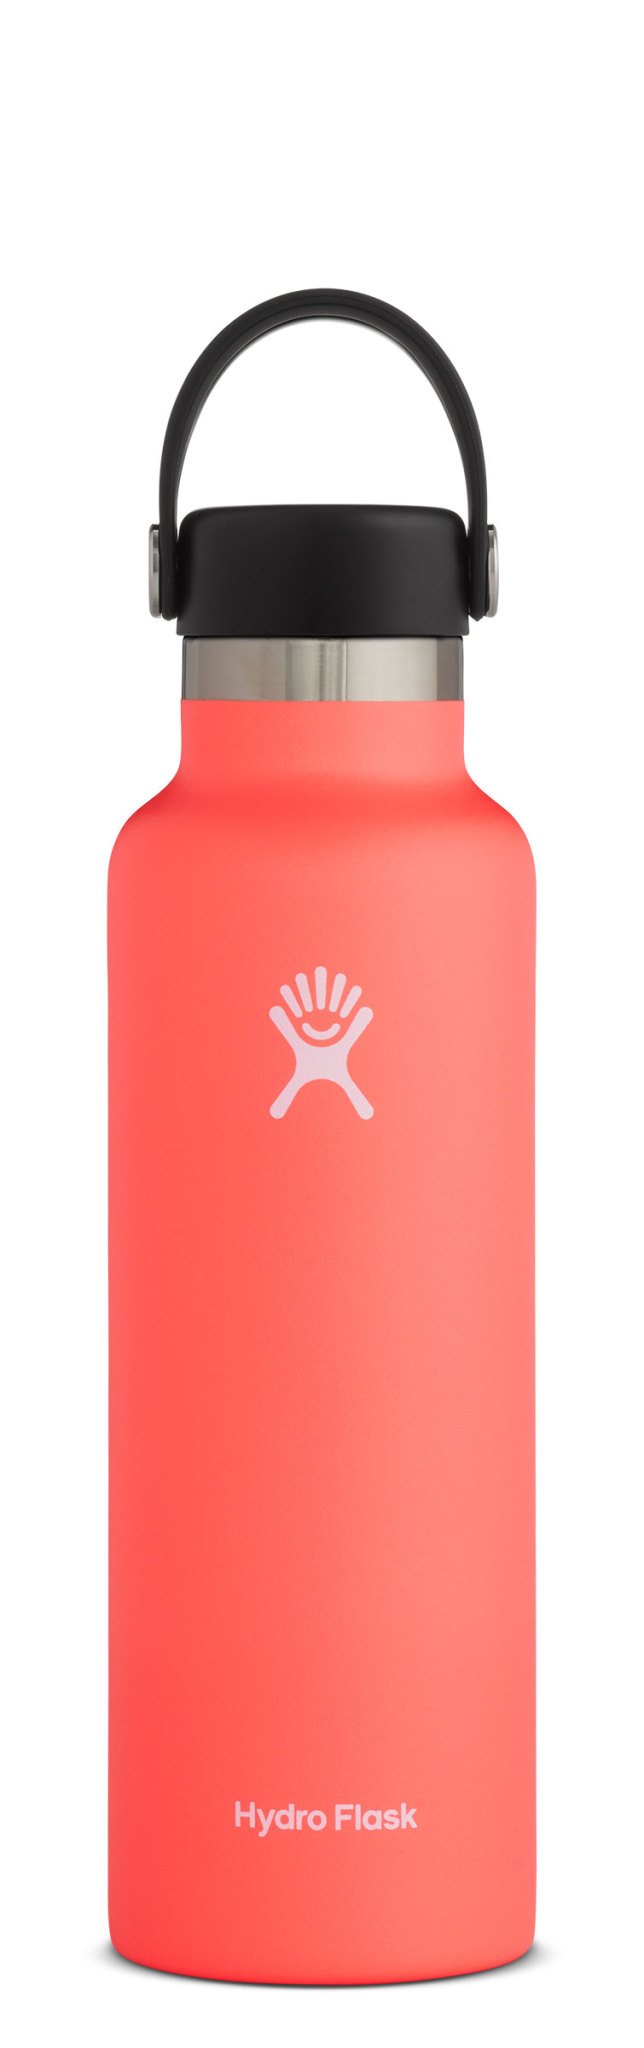 Hydro Flask 21oz Standard Mouth with Standard Flex Cap-4